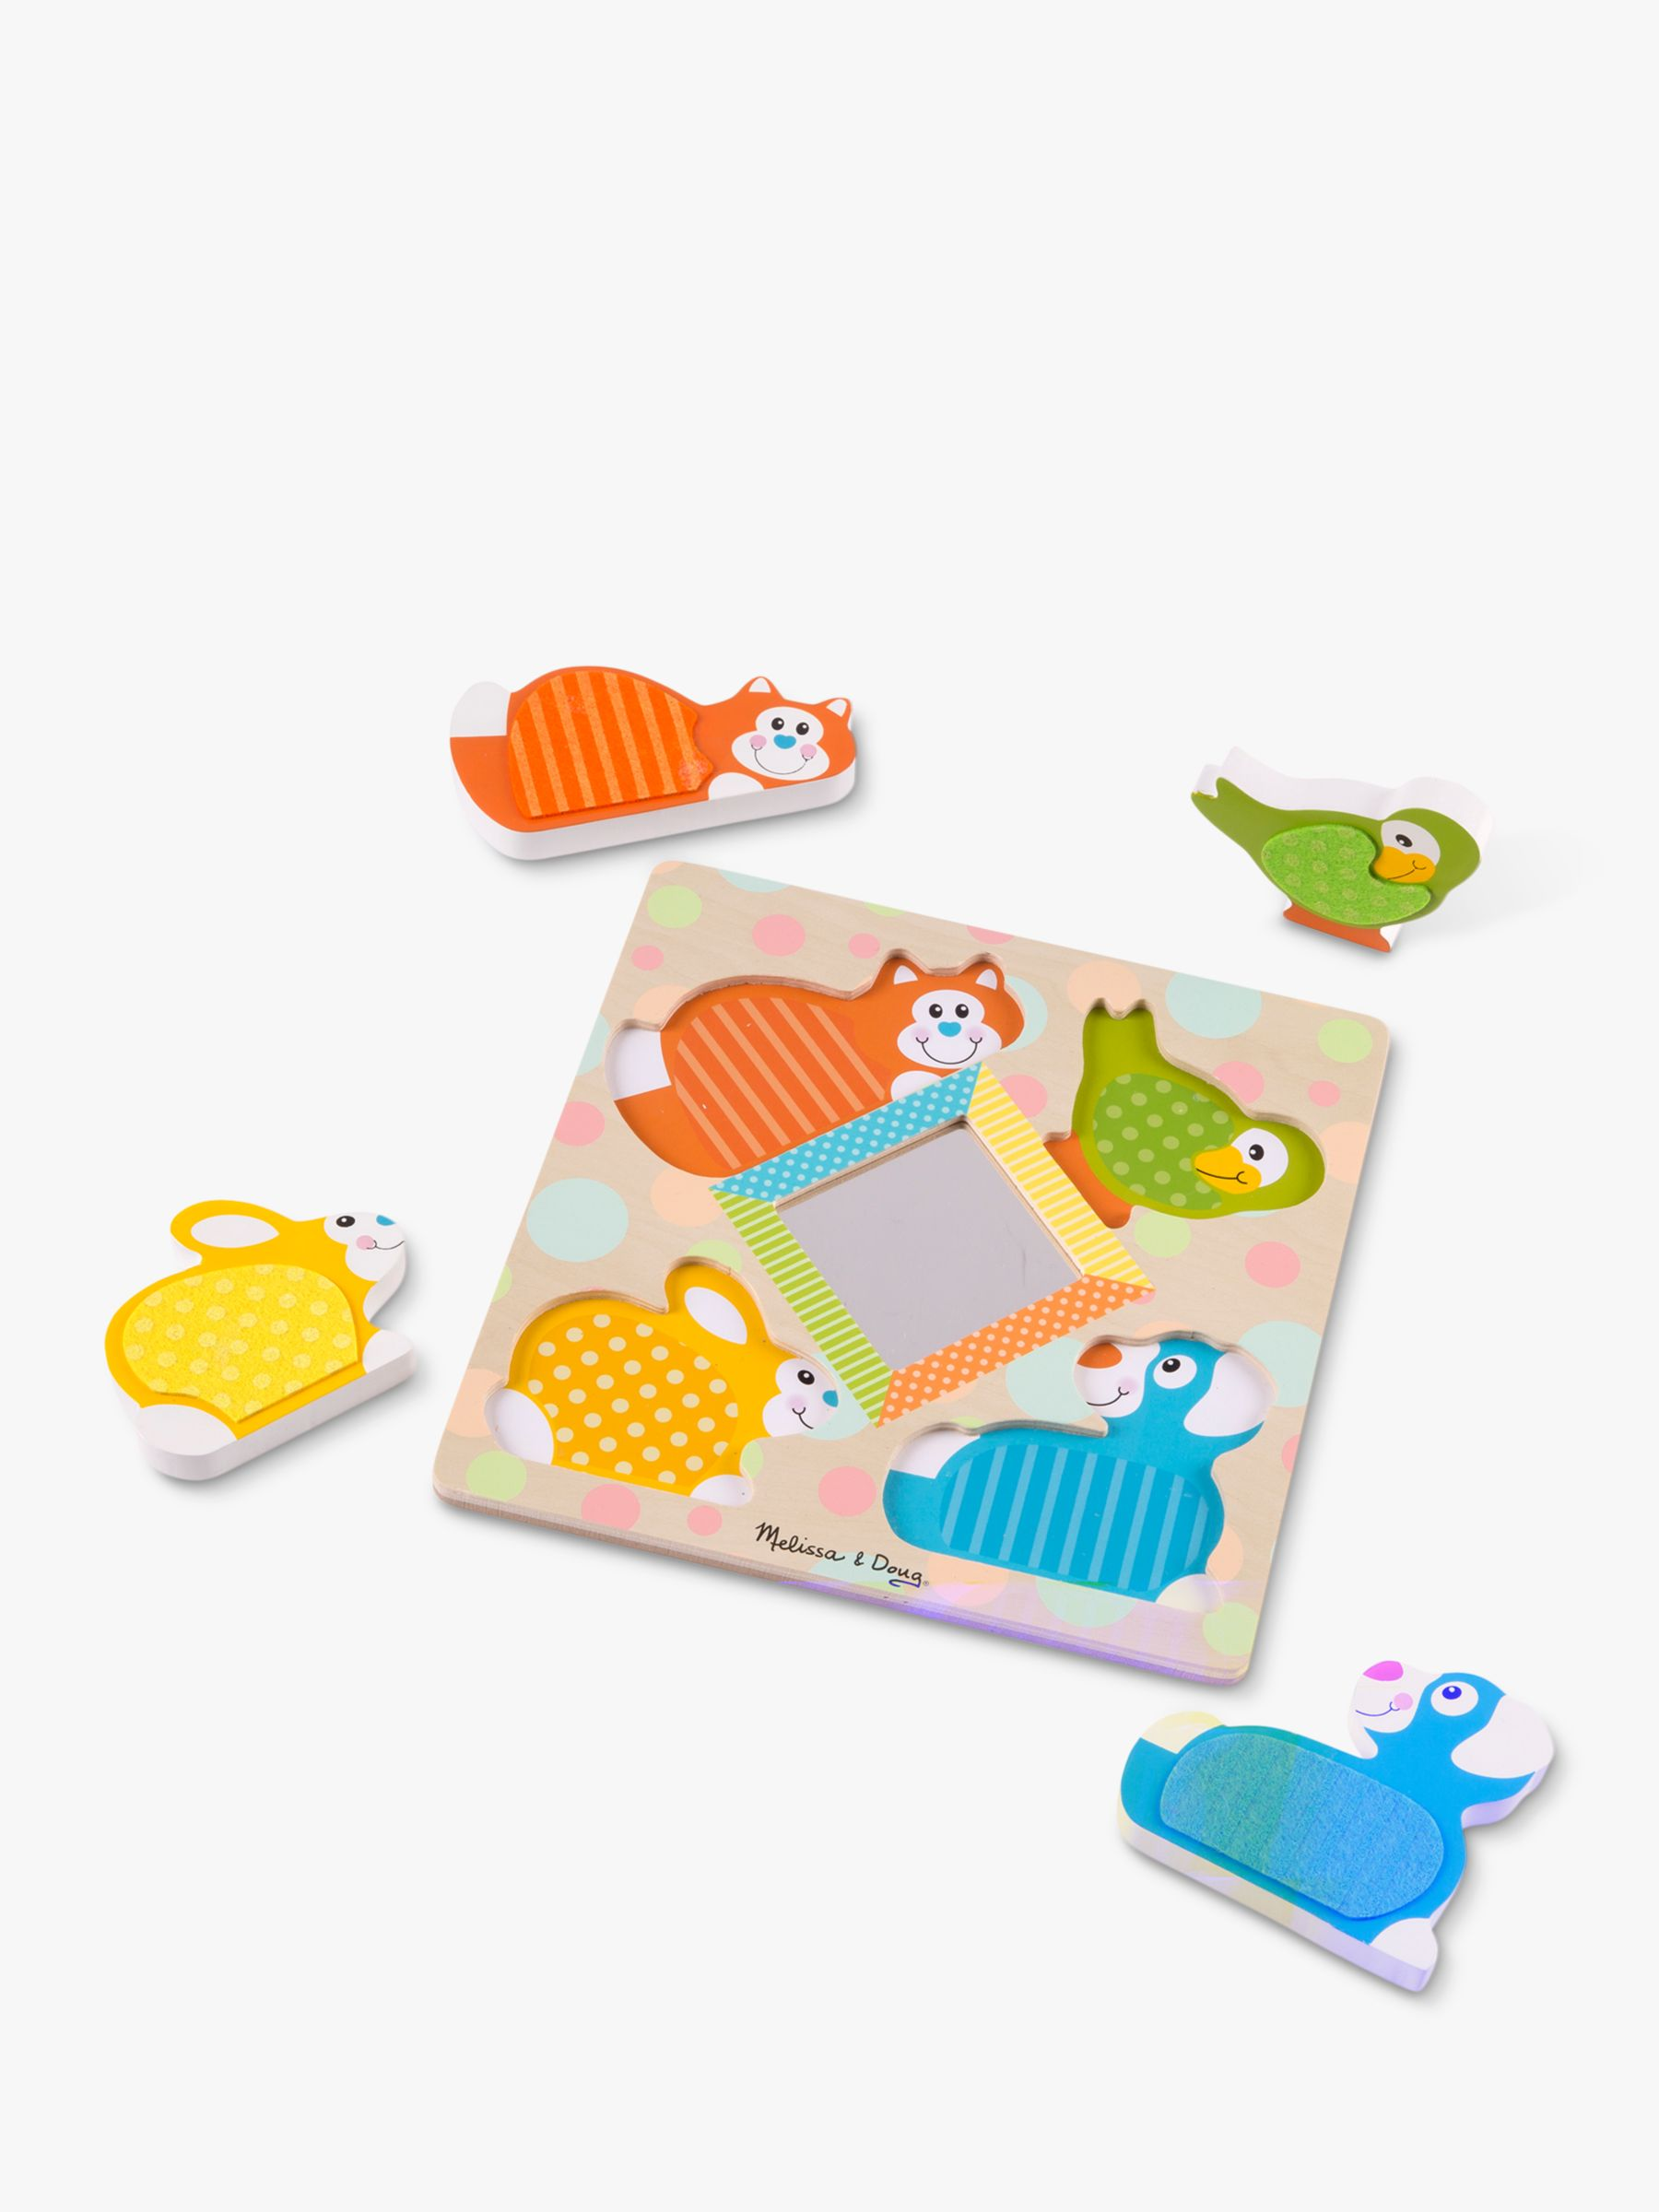 Melissa & Doug Melissa & Doug First Play Wooden Touch and Feel Peek-a-Boo Pets Puzzle